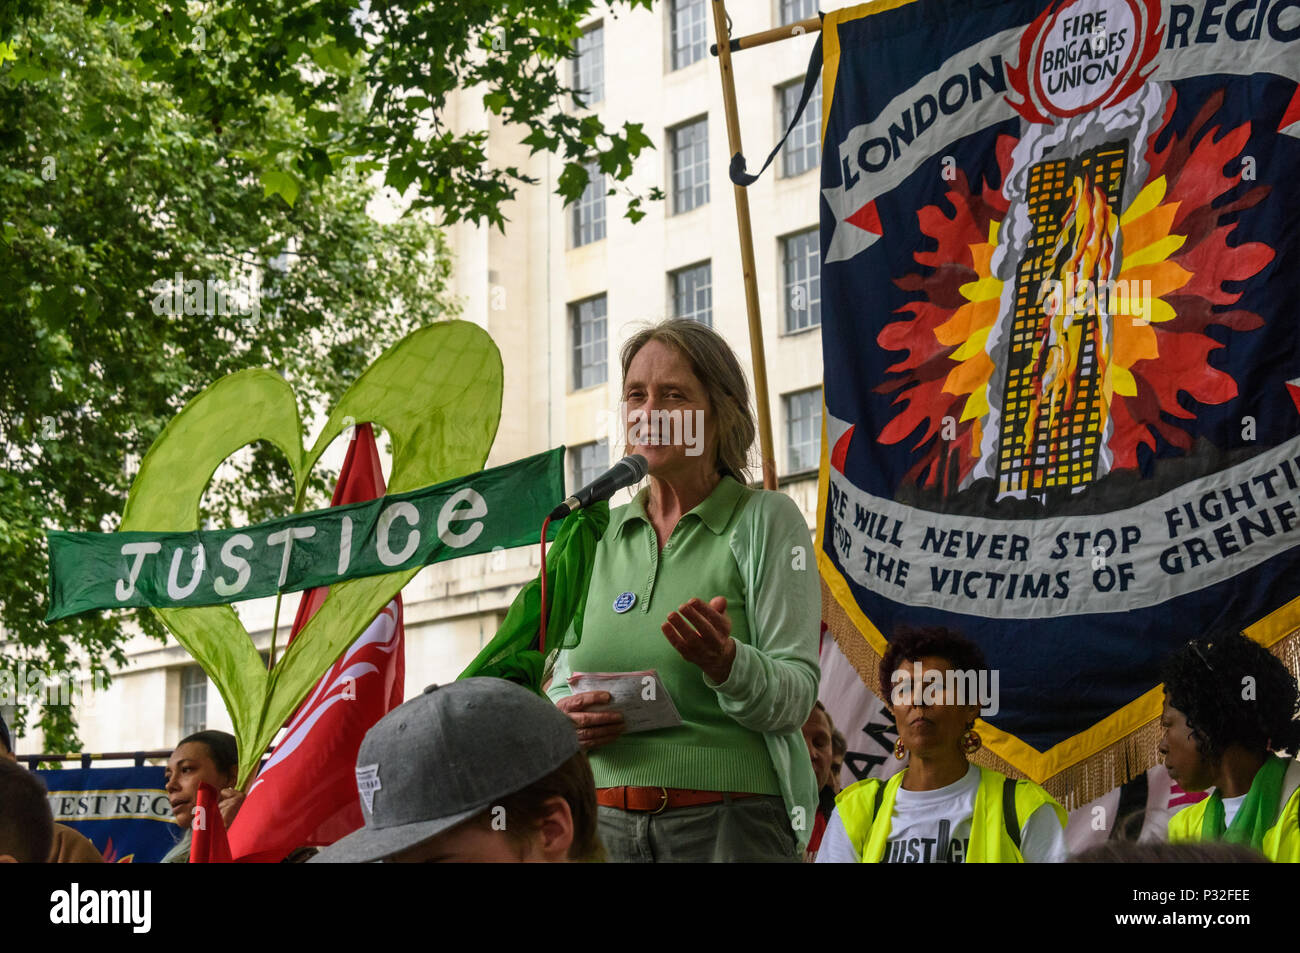 London, UK. 16th June 2018. Eileen Short of Defend Council Housing speaks at the protest at Downing St in solidarity with the 72 killed and the survivors of the Grenfell fire a year ago organised by Justice4Grenfell and the FBU (Fire Brigades Union.) After some speeches they marched to the Home Office for a brief protest before returning to Downing St for more speeches. Speakers complained of the many promises made by Theresa May which have been broken, despite her promise all survivors would be rehoused in 3 weeks, a year later 50% of survivors and displaced families are still in emergency ac - Stock Image